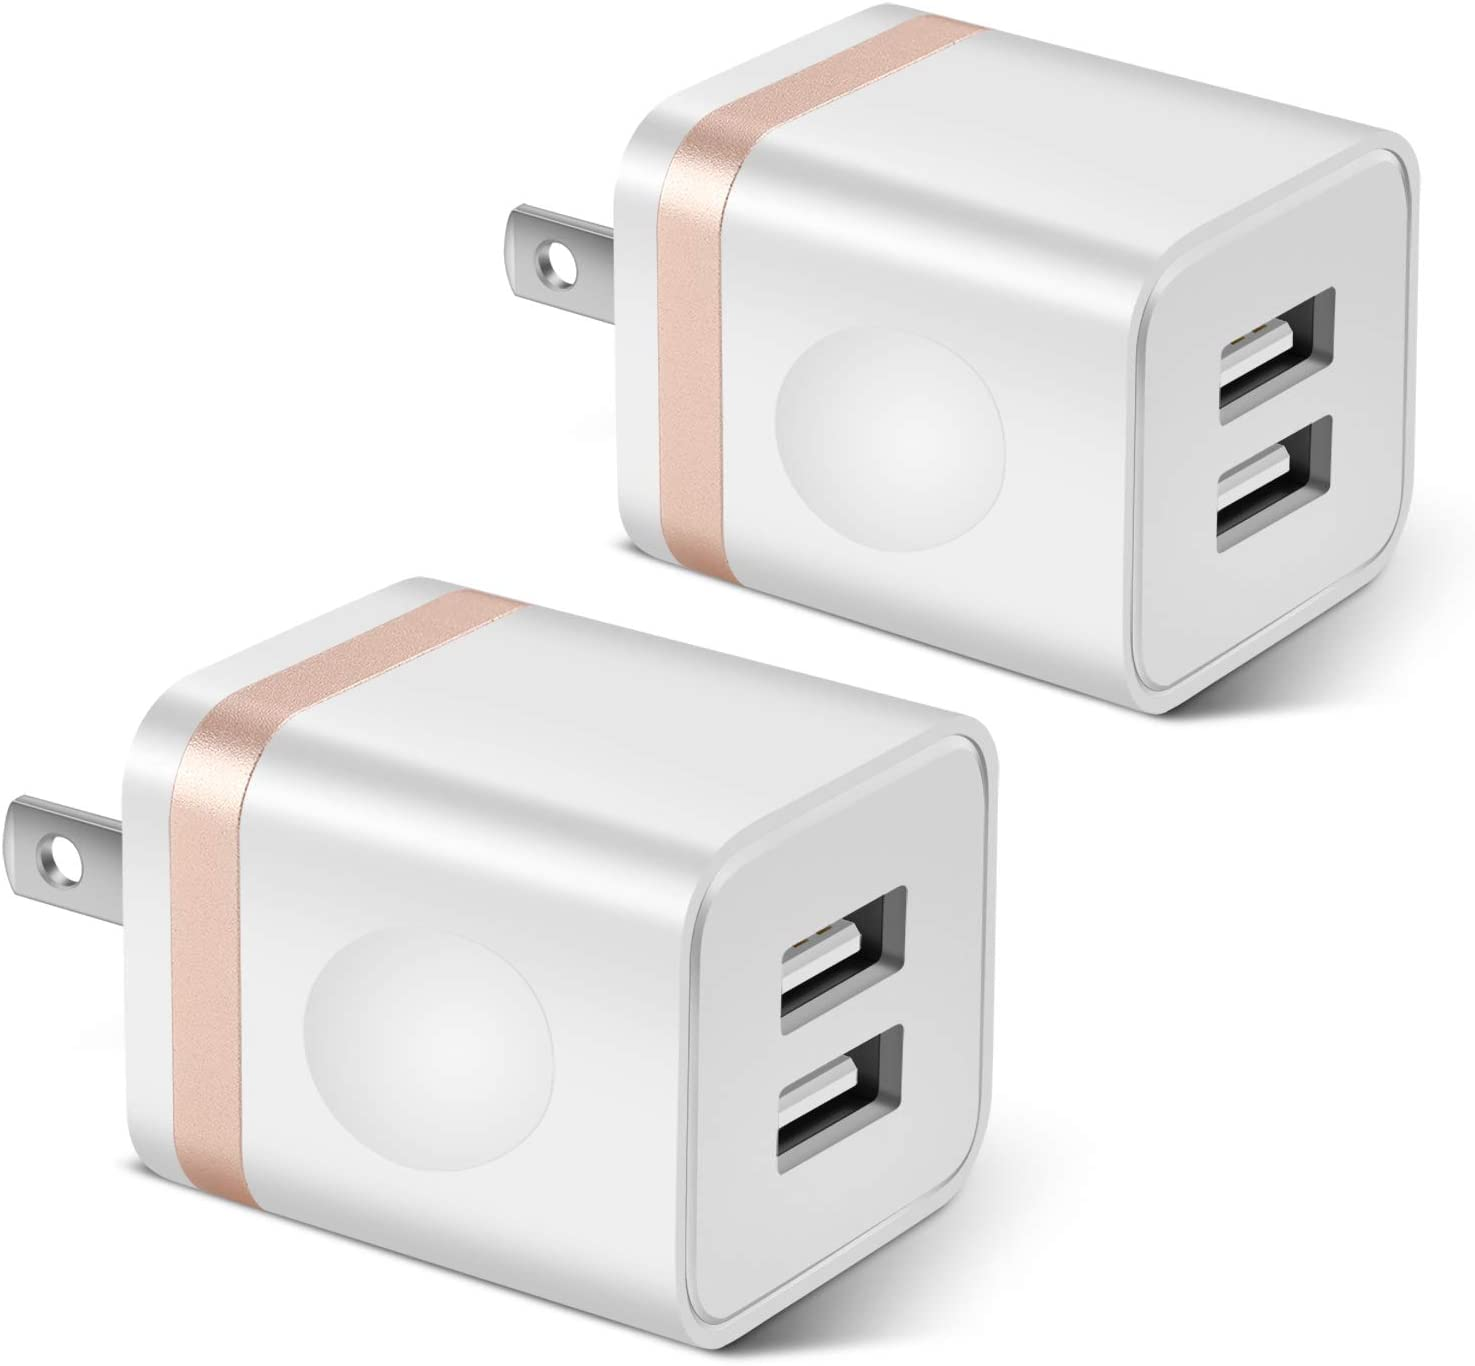 Android Phone -White ARCCRA USB Wall Charger 2-Pack 2.1A//5V Dual Port USB Plug Power Adapter Charger Block Cube Compatible with Phone Xs Max//Xs//XR//X//8//7//6 Plus//SE//5S//4S Moto Kindle Samsung LG